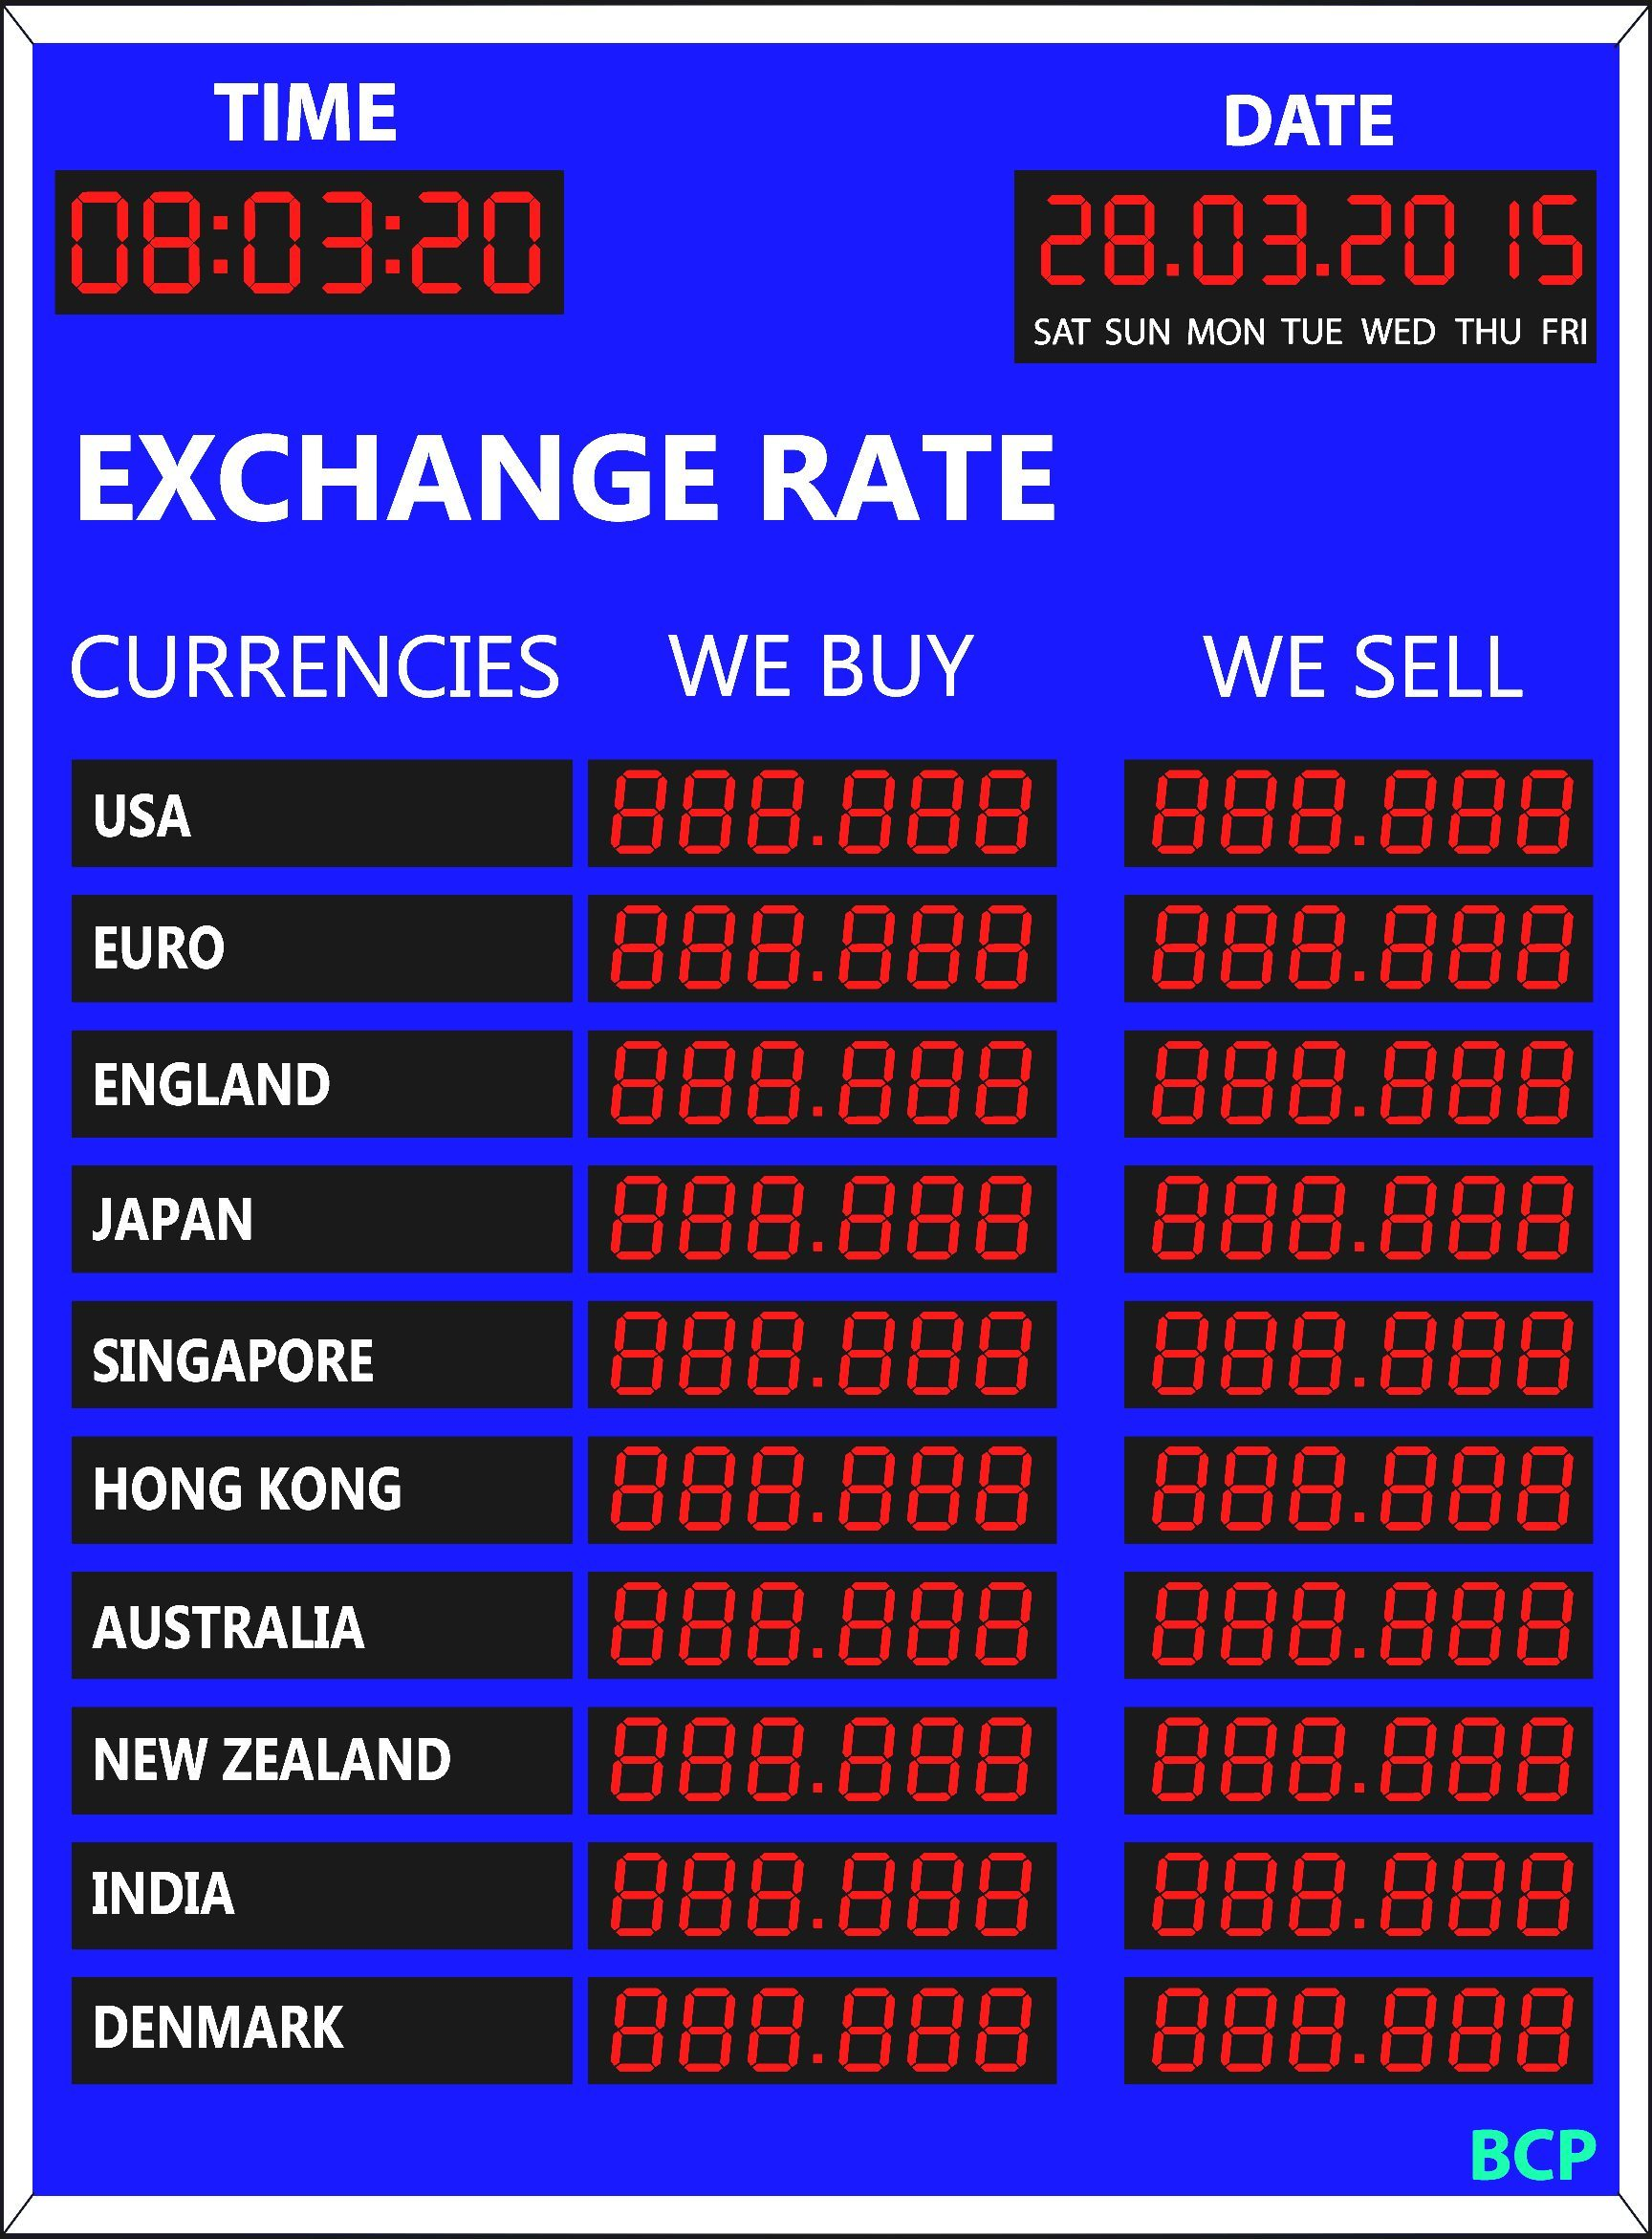 Currency exchange rate display : BCP